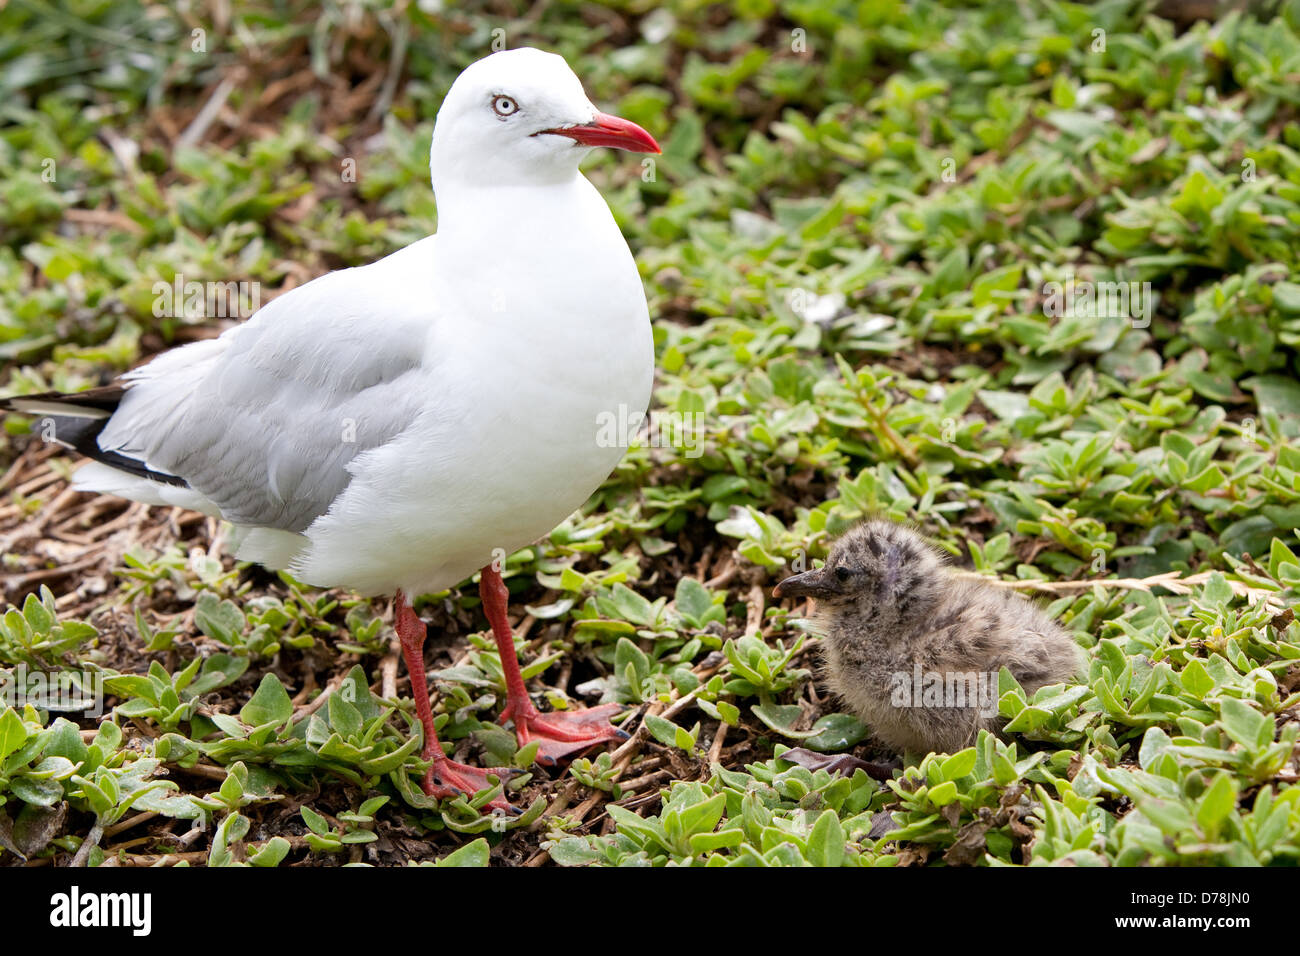 Baby Seagull Stock Photos Amp Baby Seagull Stock Images Alamy